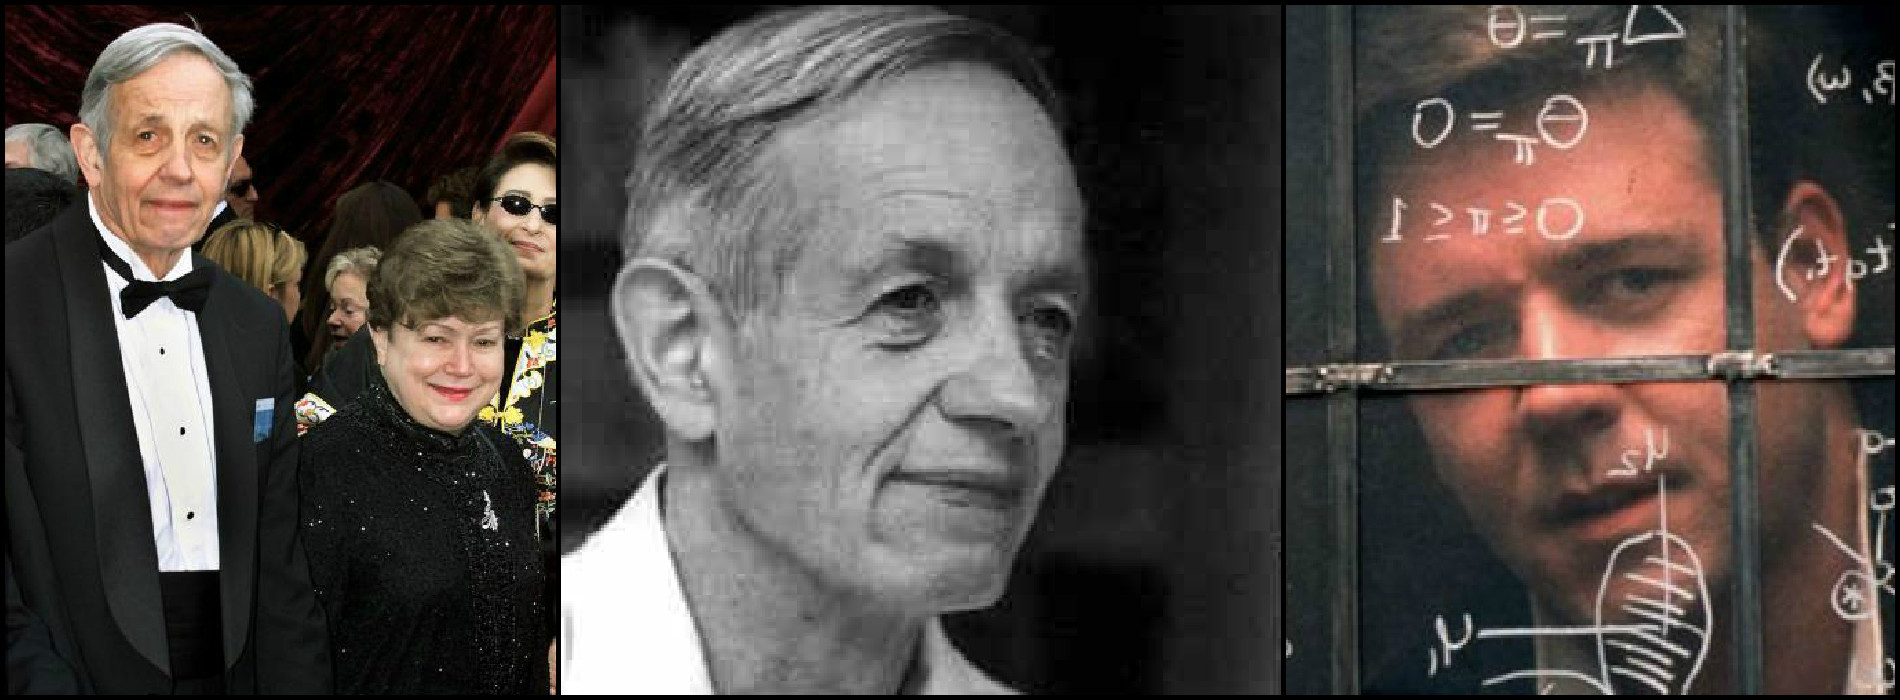 a biography of john nash a nobel prize winner represented in the movie a beautiful mind Mathematician john nash, a nobel prize winner who inspired the movie a beautiful mind, was killed in an auto accident along with his wife in new jersey, abc news reported.